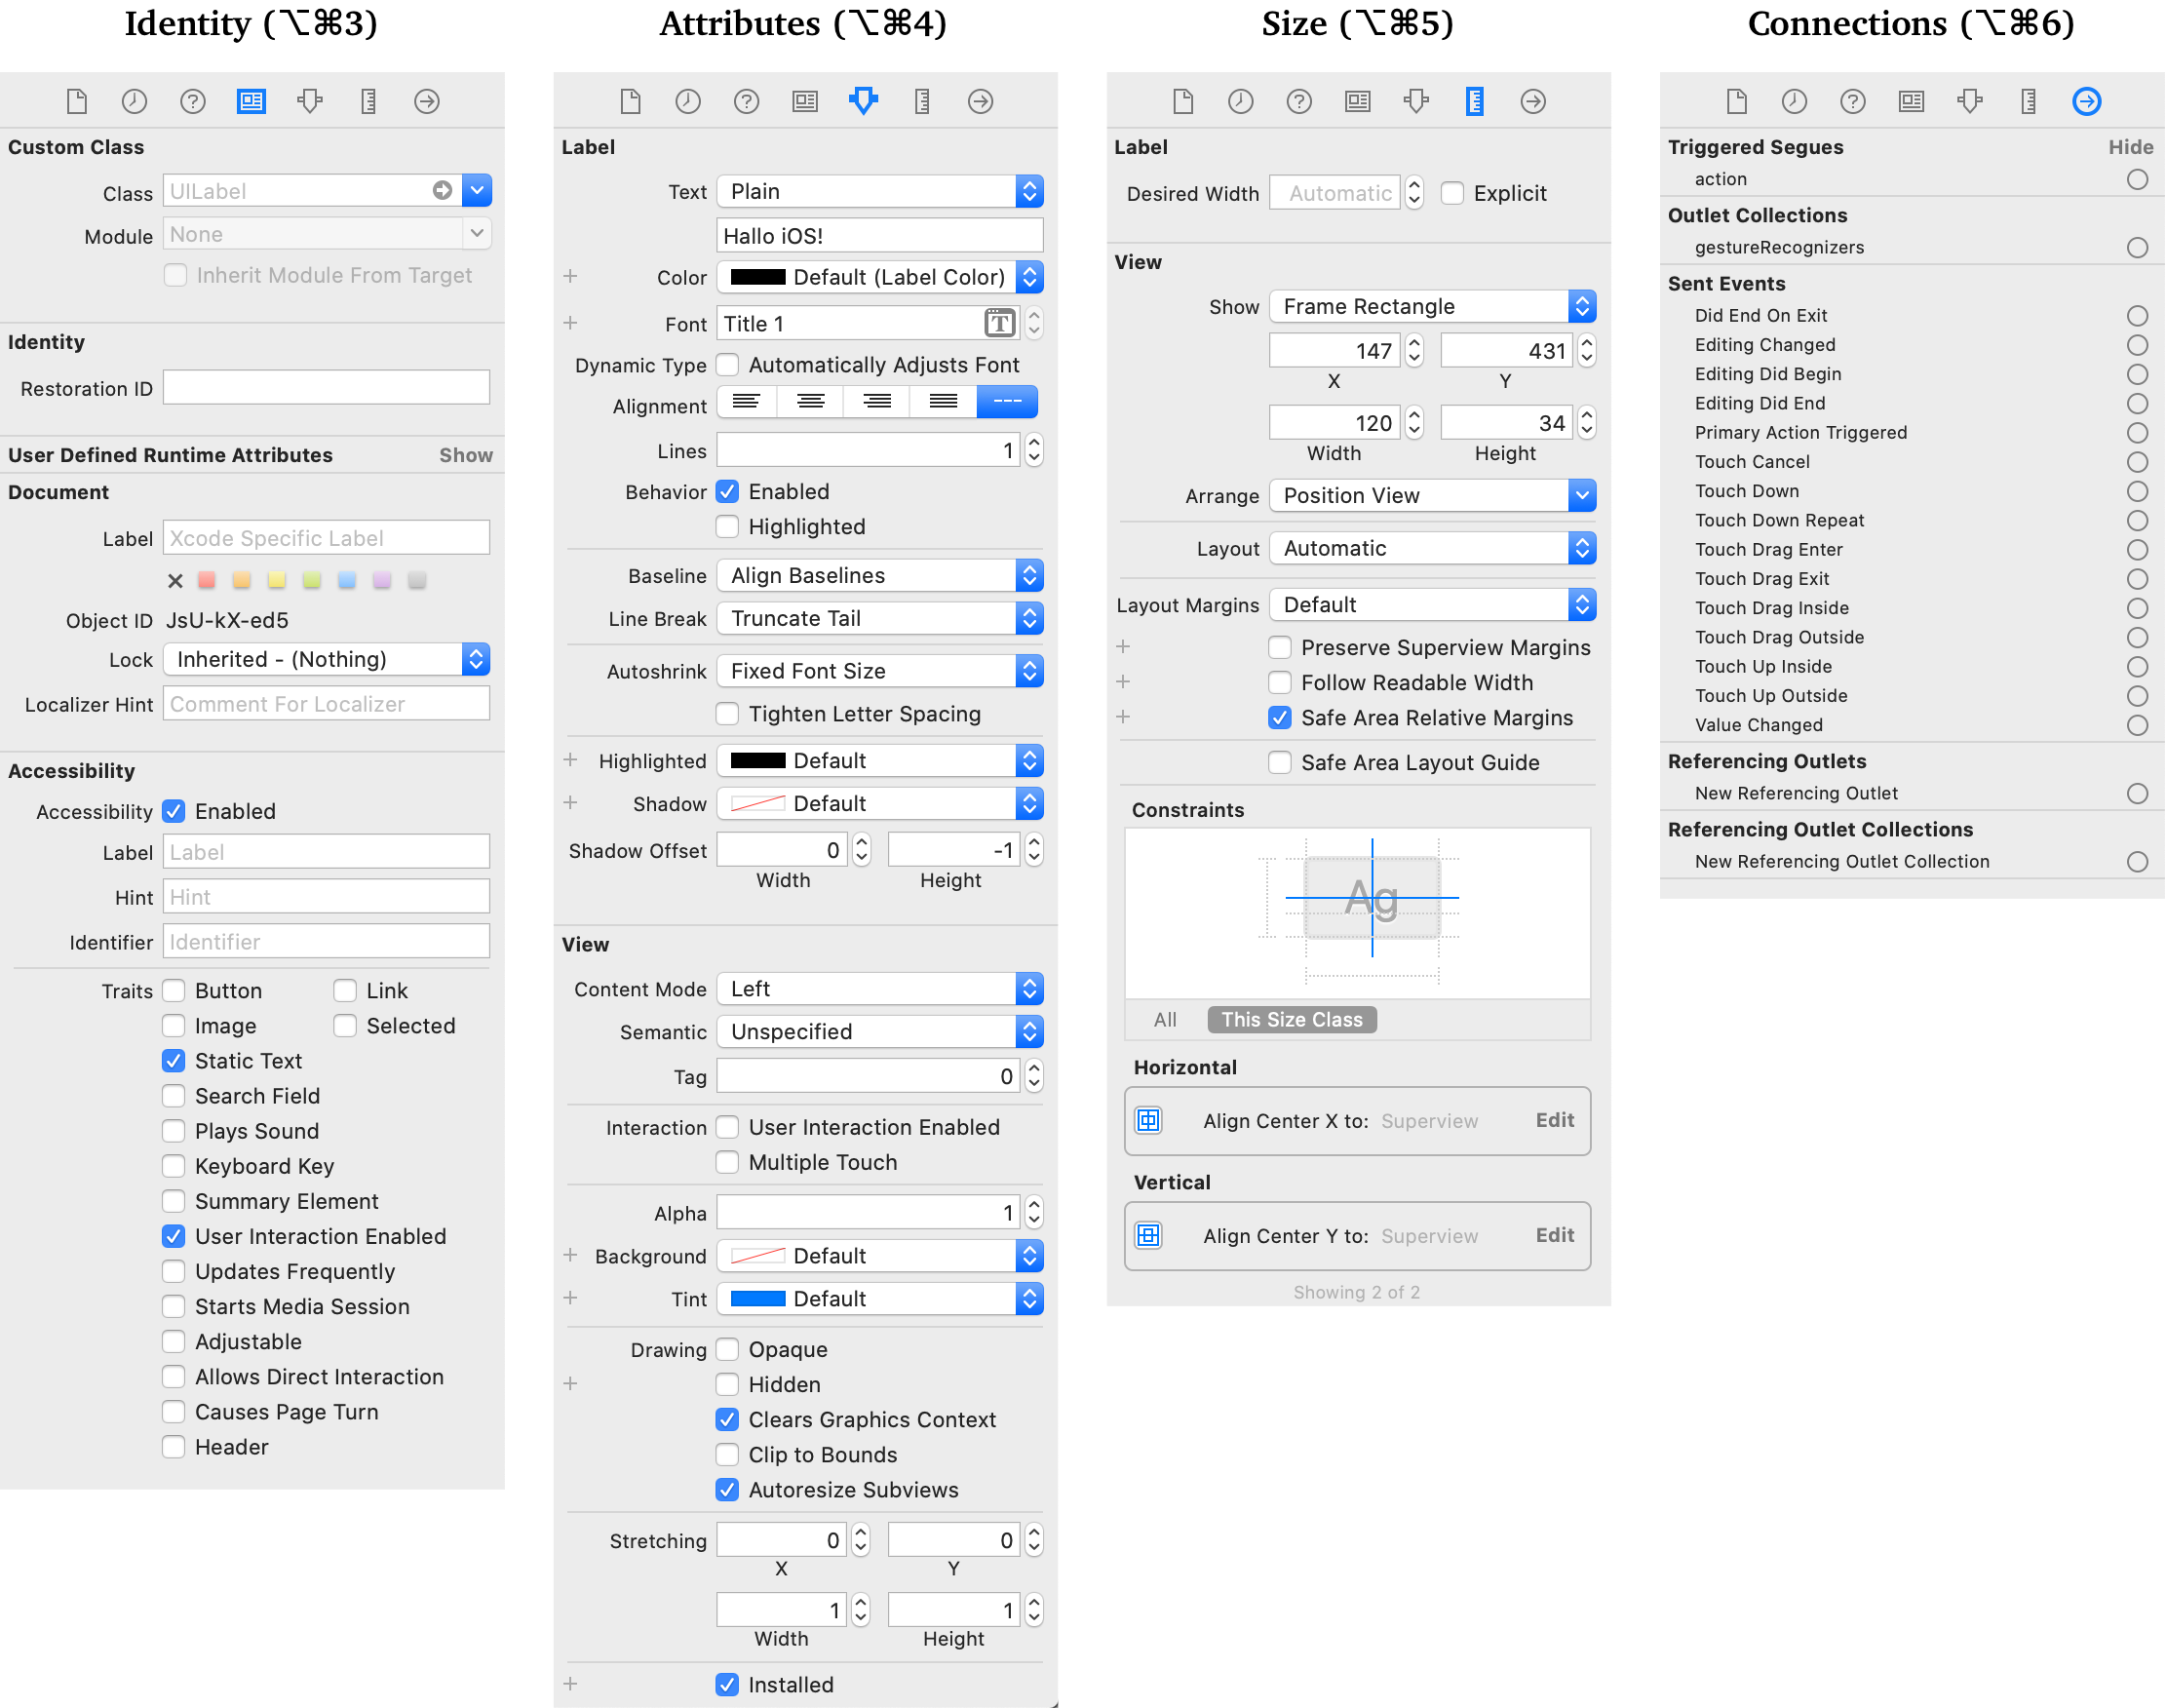 Storyboard: Inspector-Paletten Identity, Attributes, Size, Connections